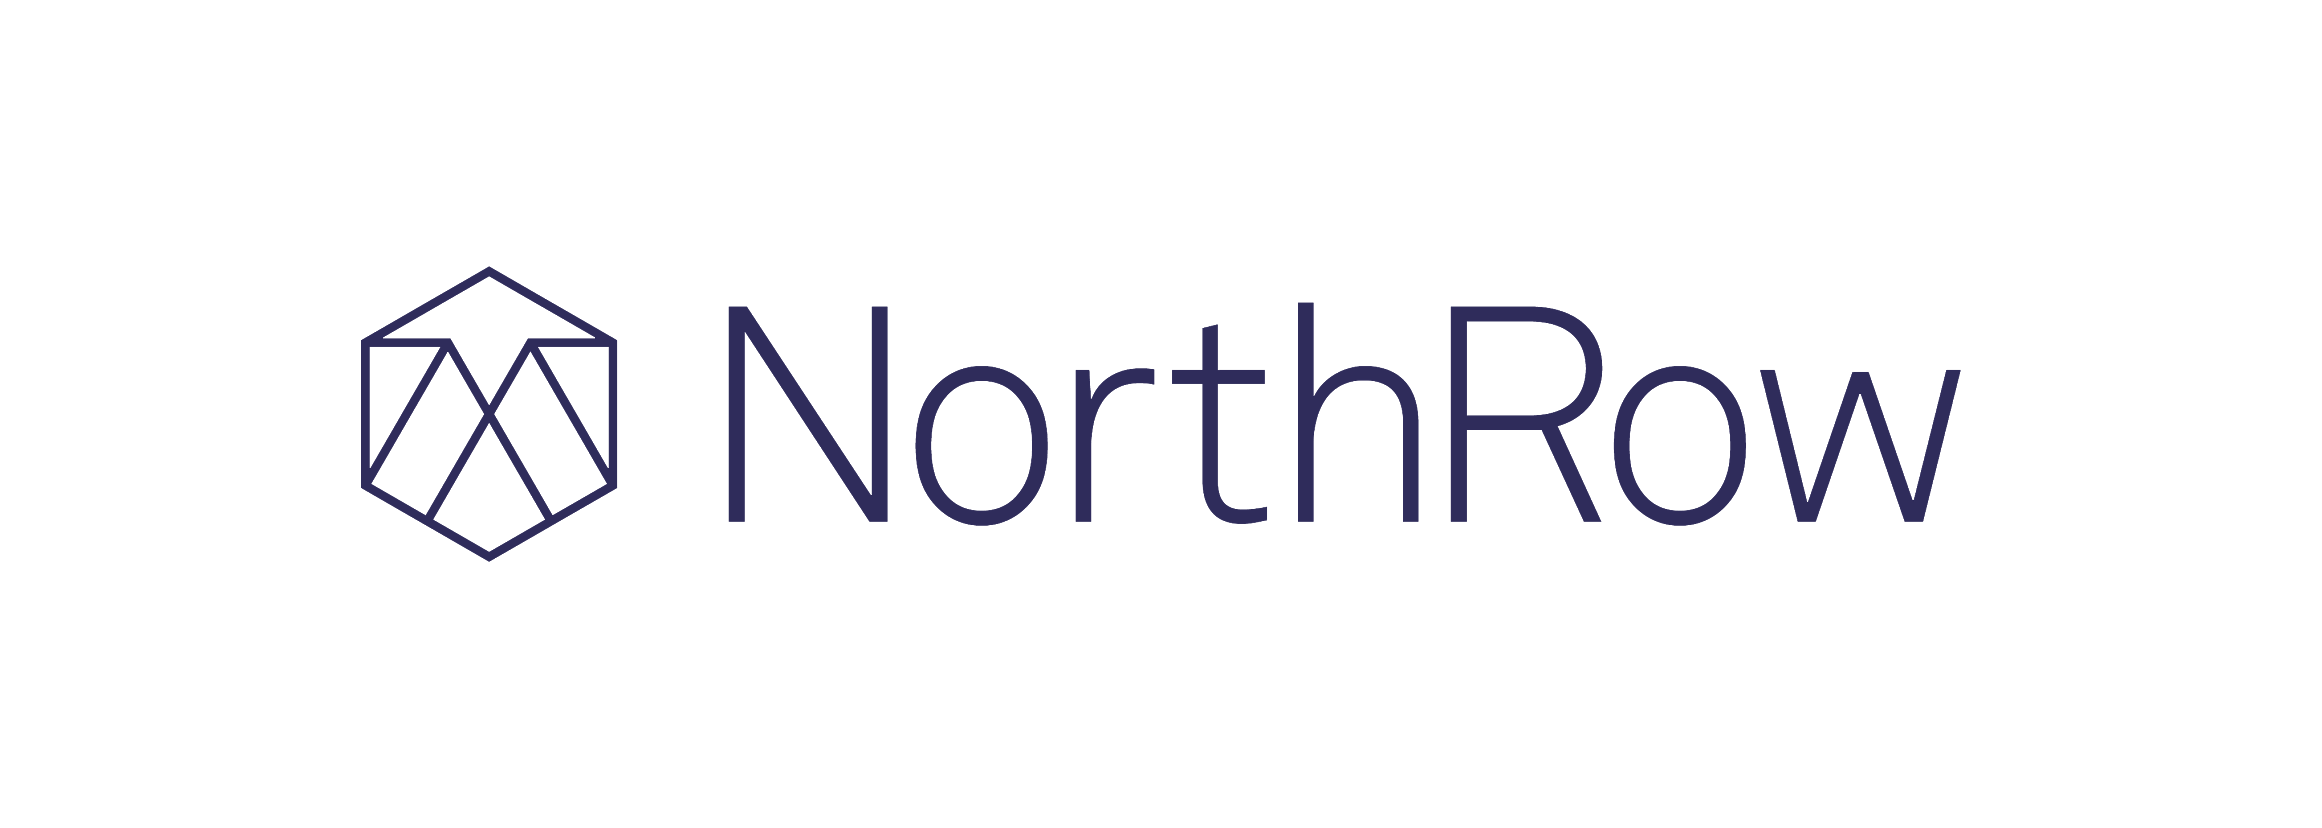 NorthRow Appoints Adam Holden As New CEO